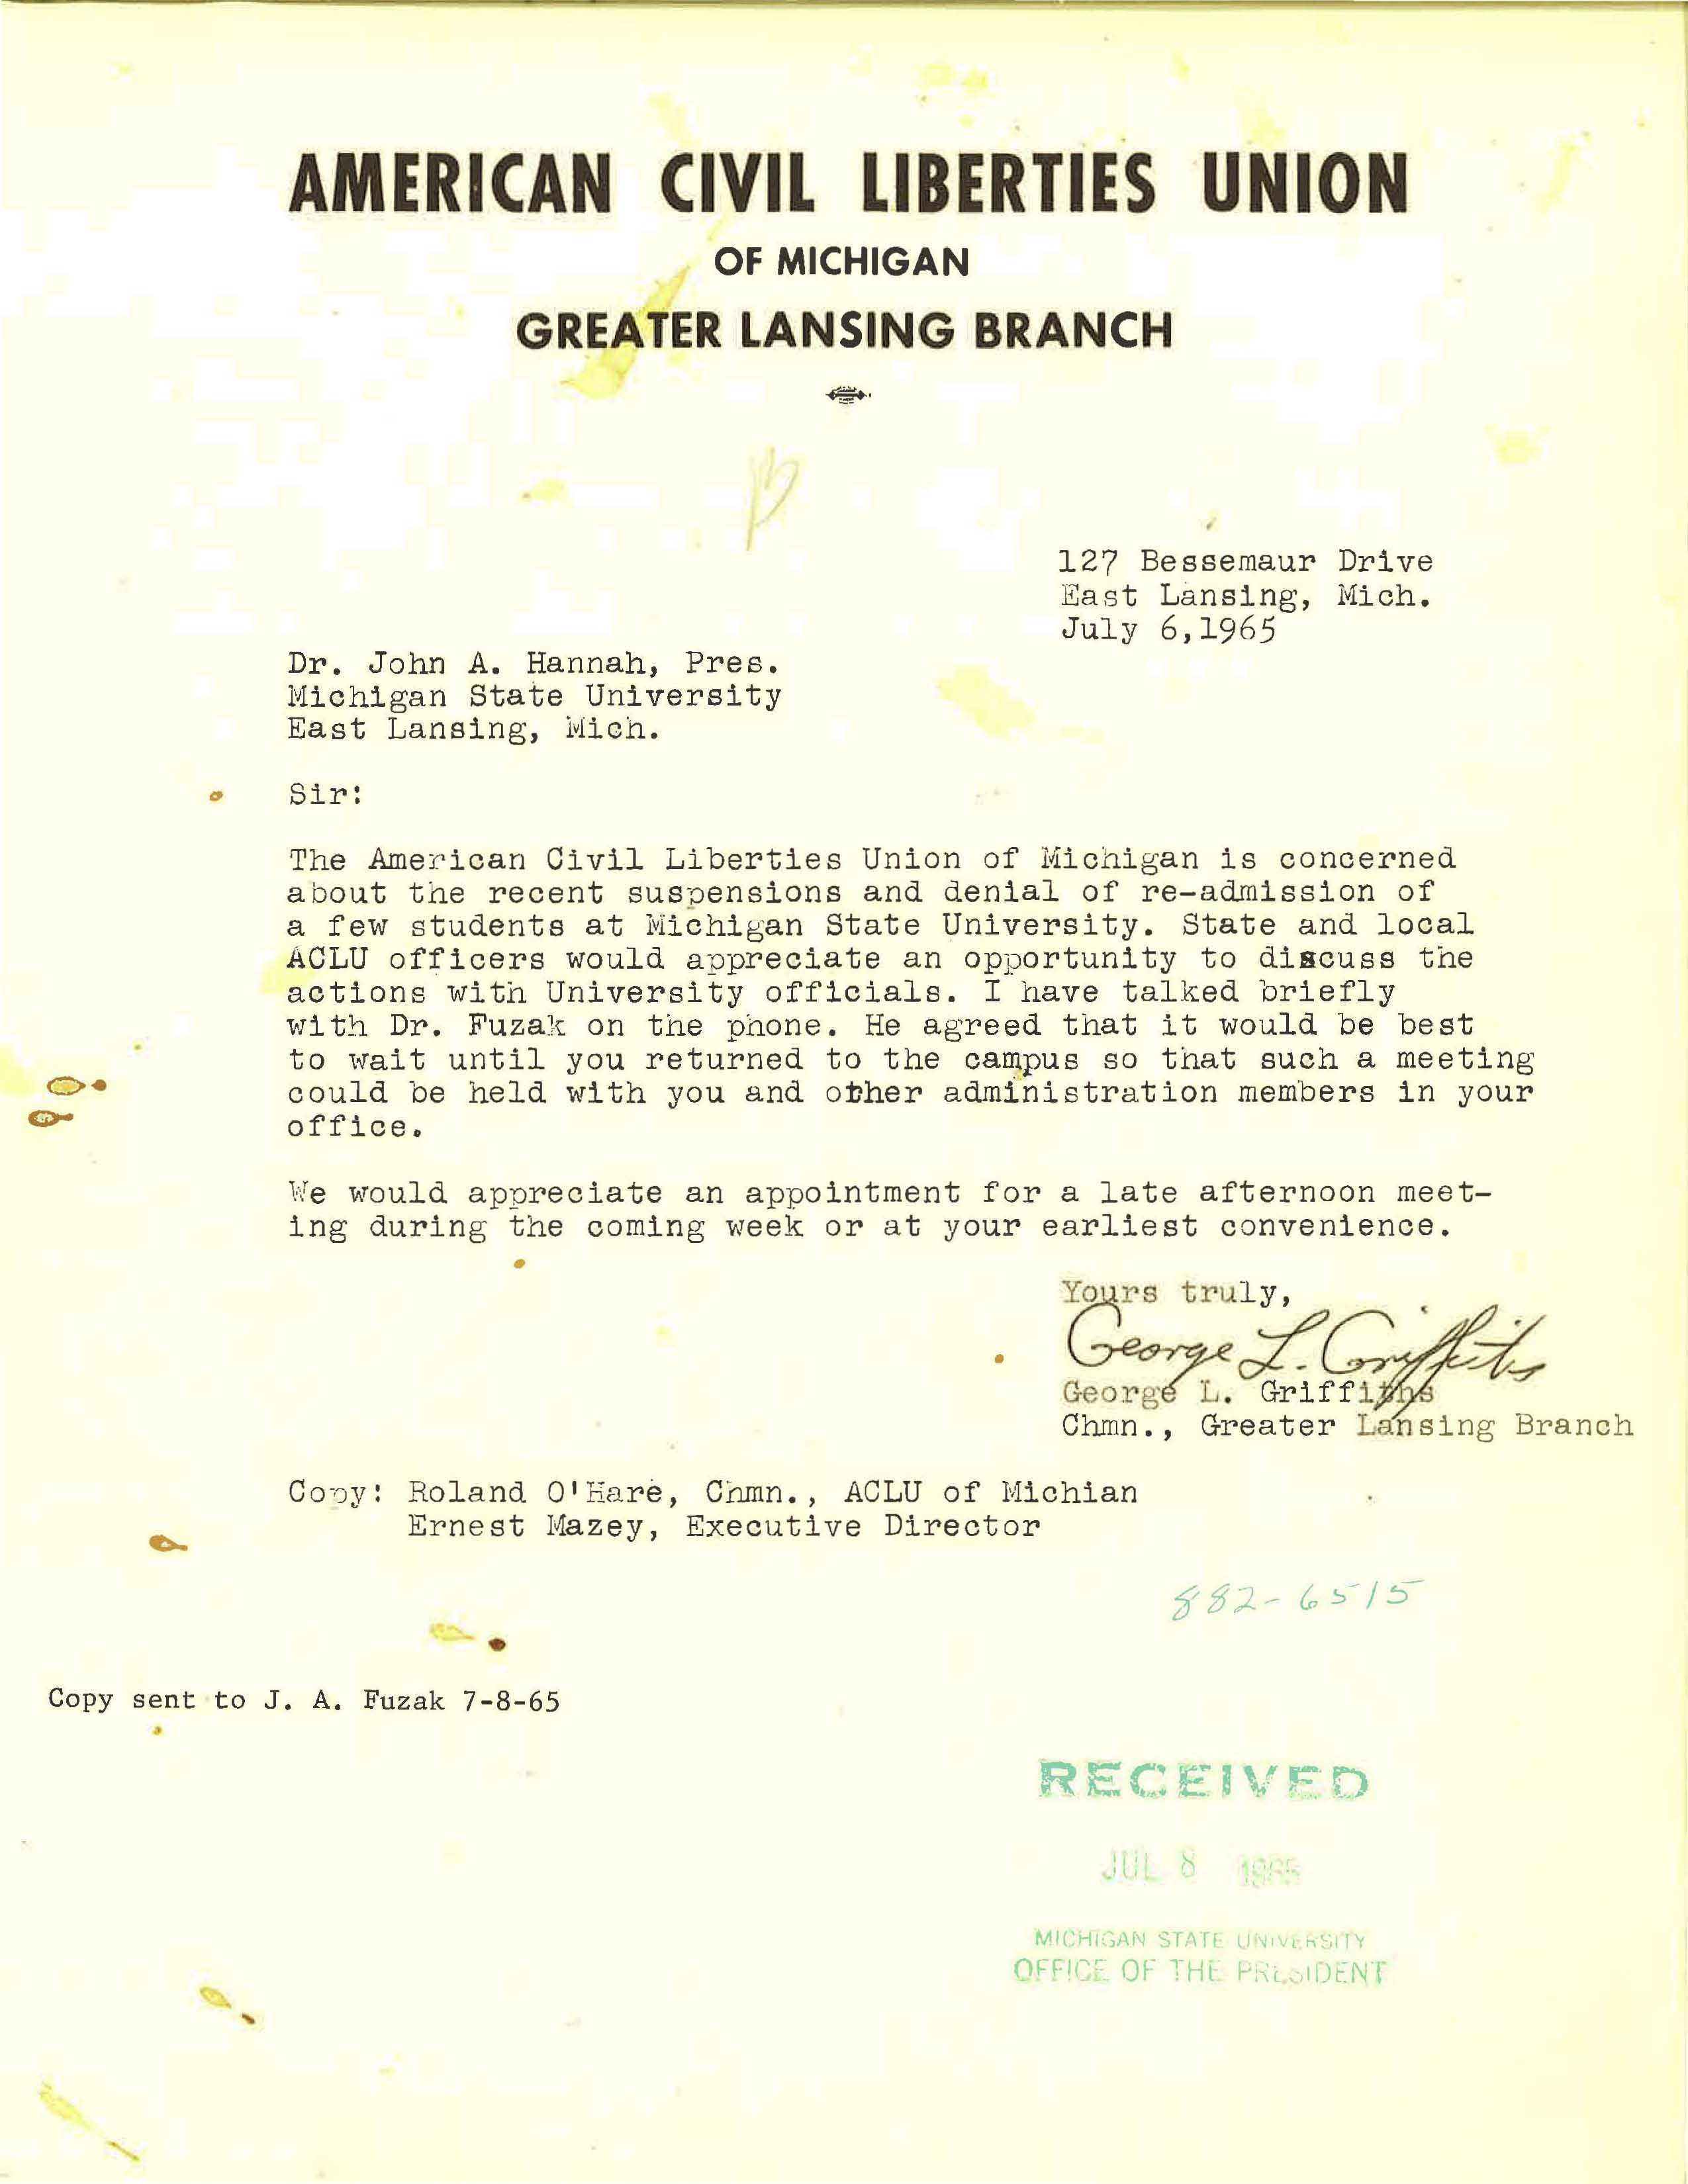 ACLU, Greater Lansing branch letter, 1965